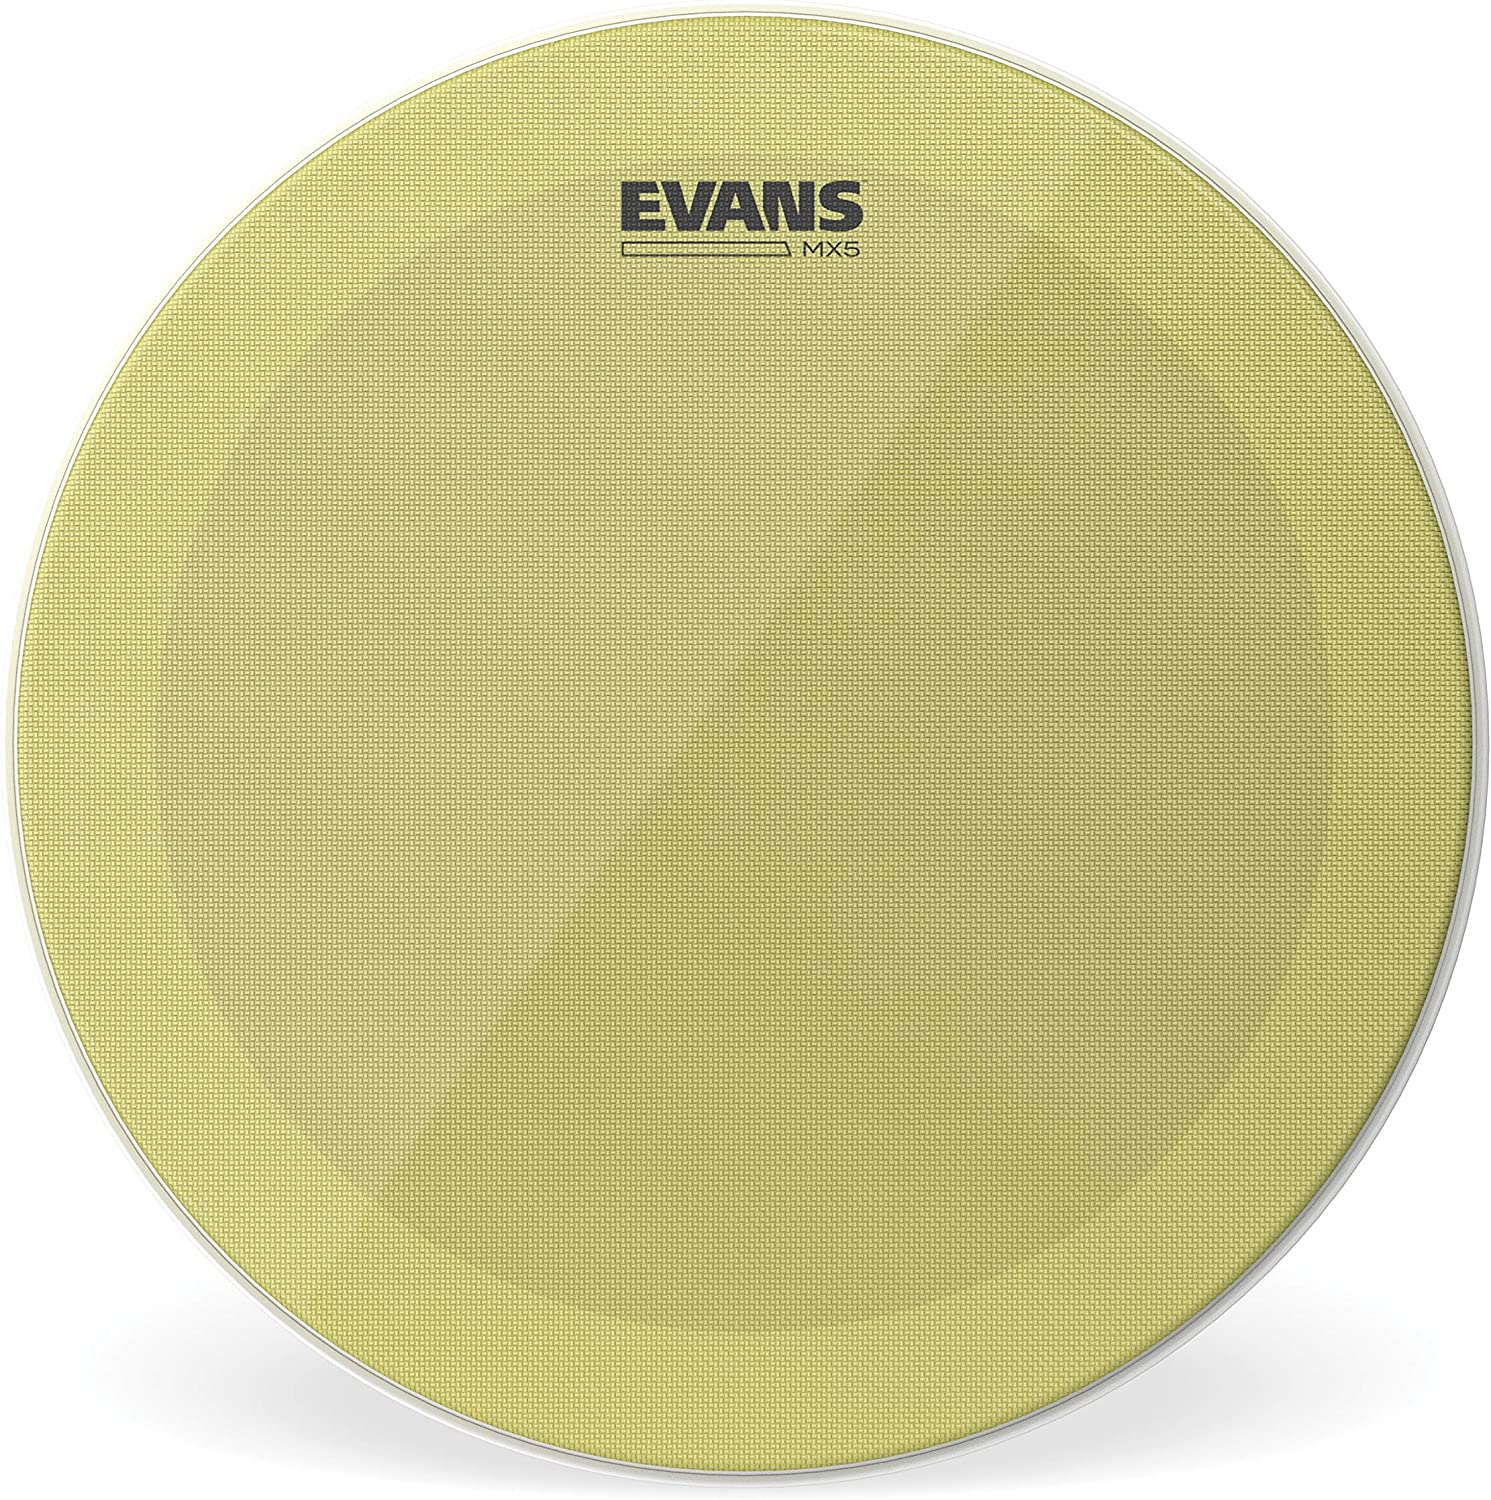 B000EEHJNS Evans MX5 Marching Snare Side Drum Head, 14 Inch 91egTbpfLOL